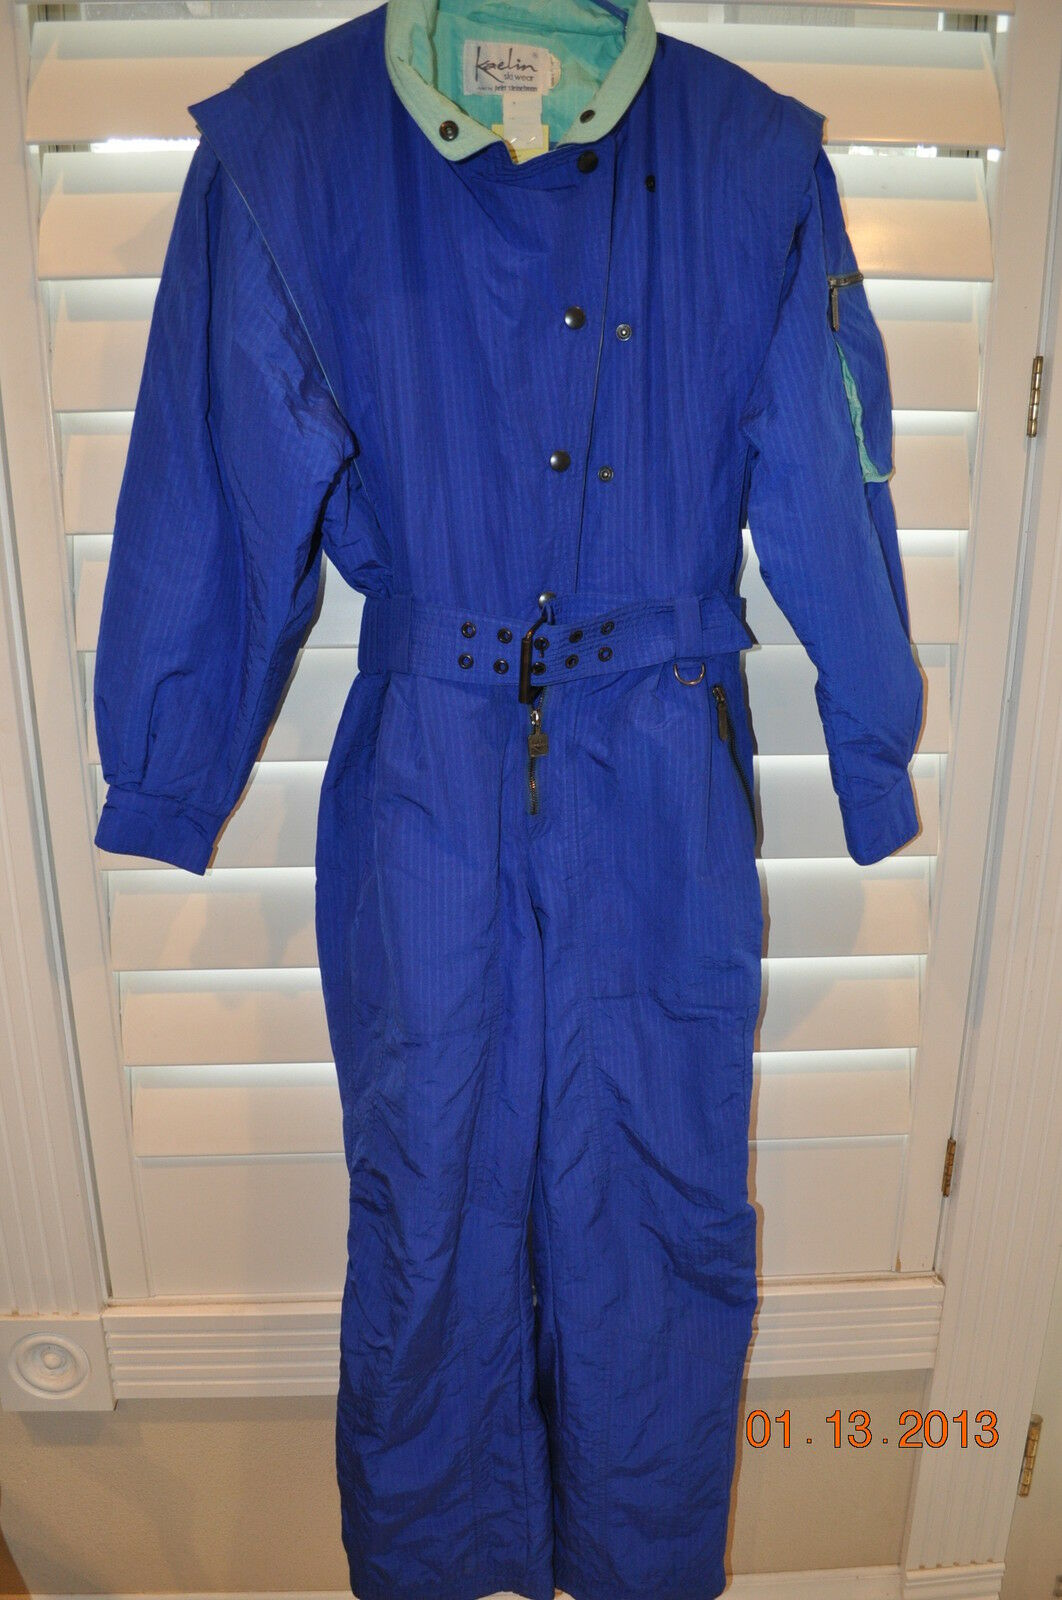 Ski Suit Snowboarding KAELIN SKIWEAR Peter Steinebronn bluee Insulated  Med Unisex  all in high quality and low price